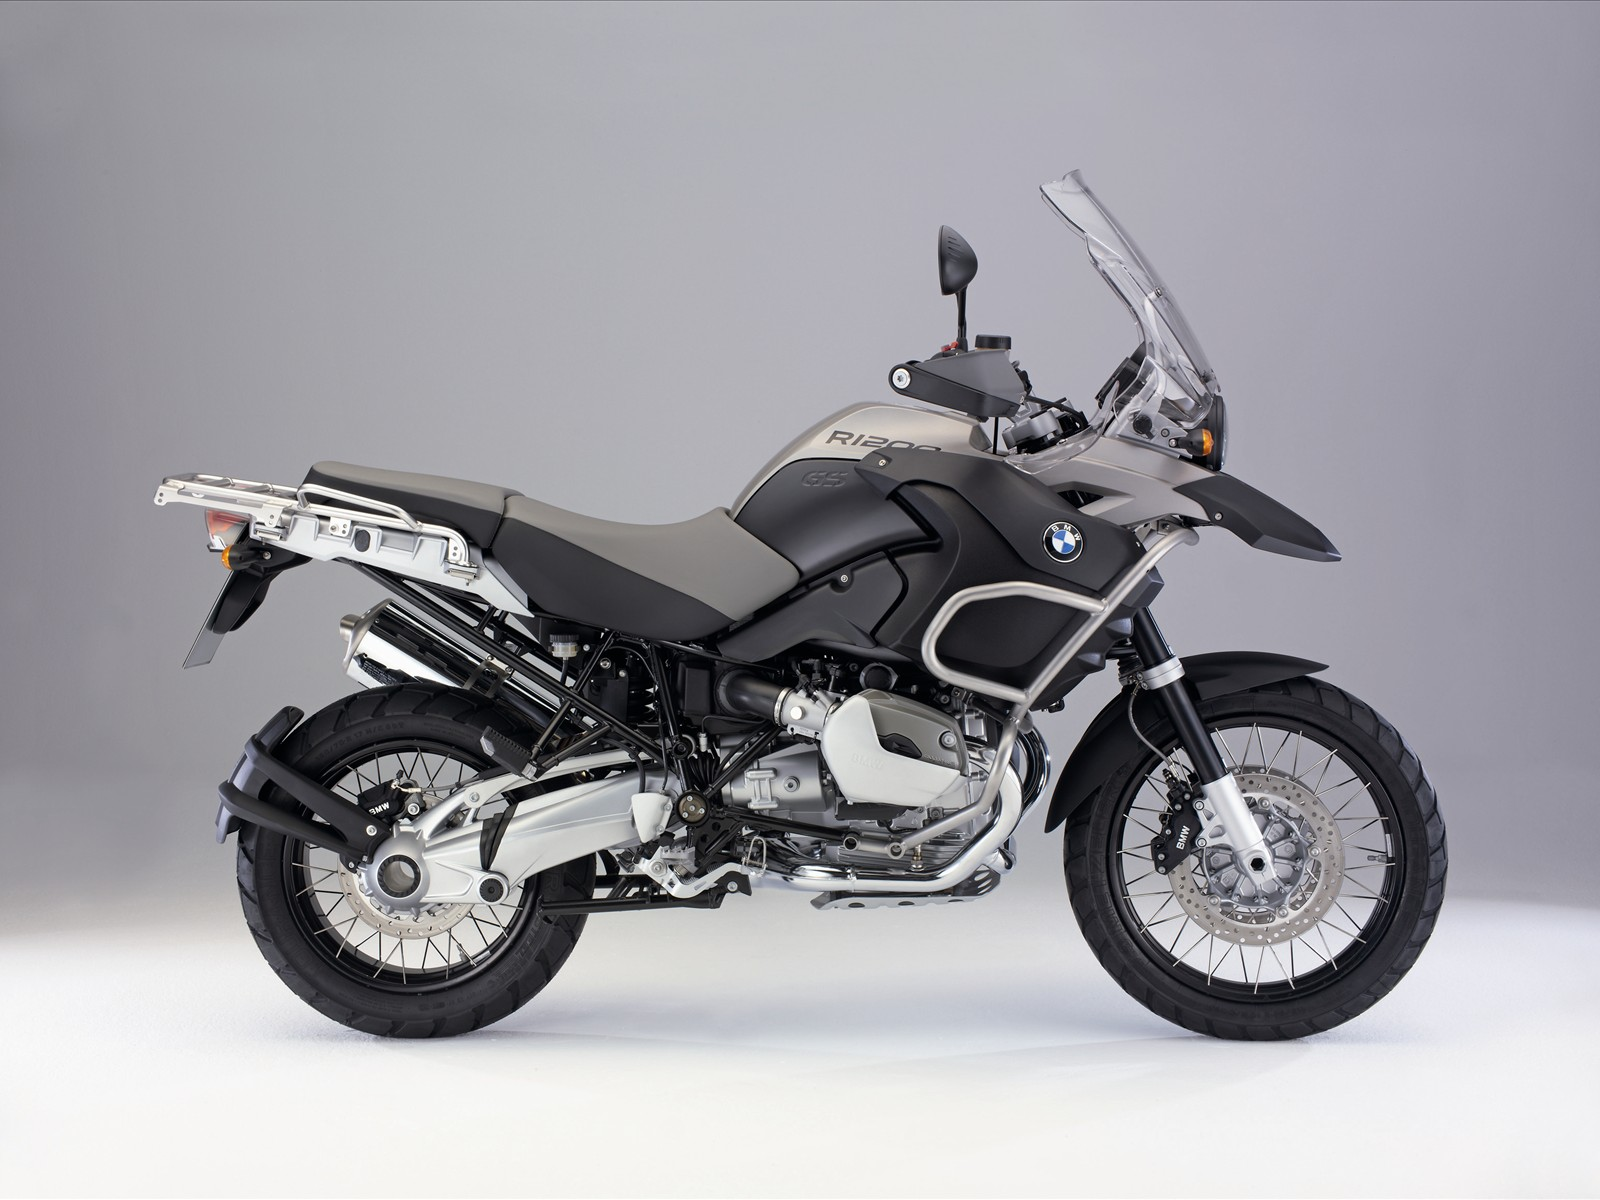 2008 bmw r1200gs motorcycle insurance information. Black Bedroom Furniture Sets. Home Design Ideas